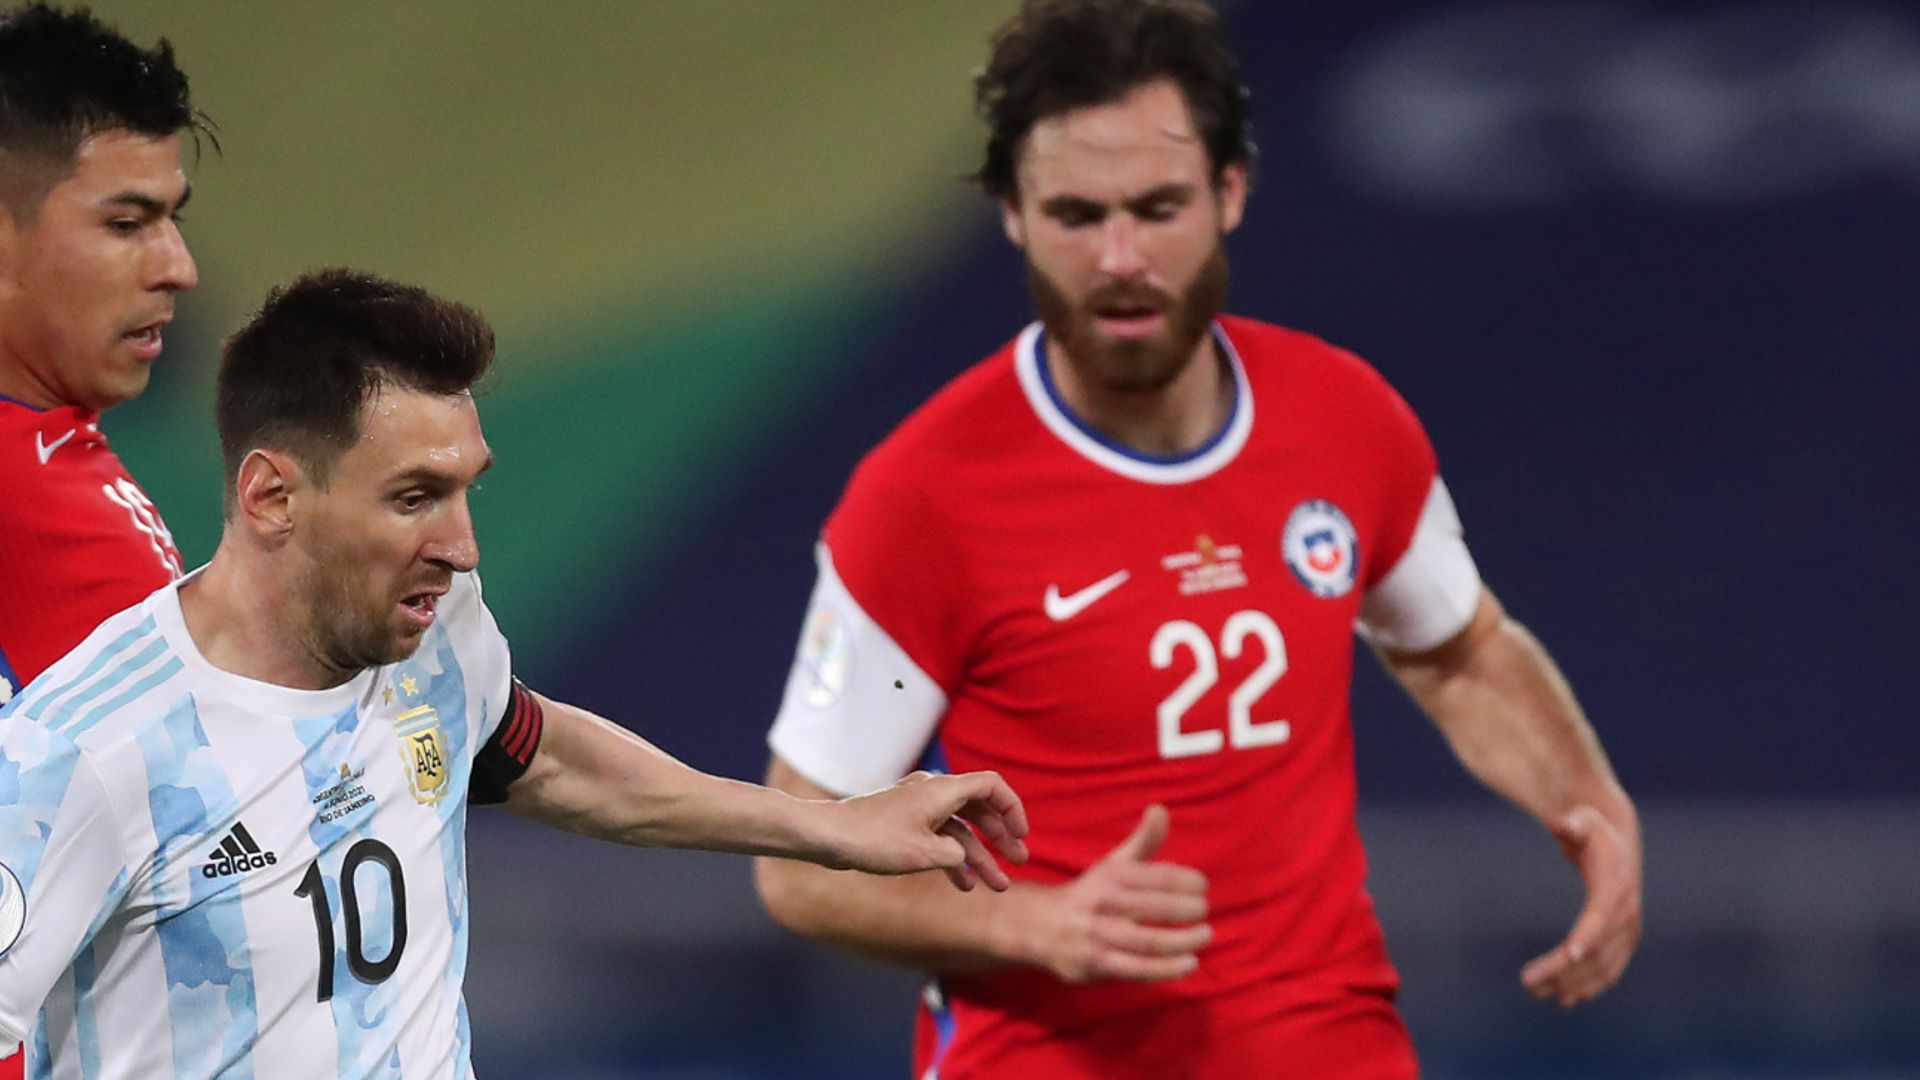 Brereton: From Blackburn to facing Messi with Chile